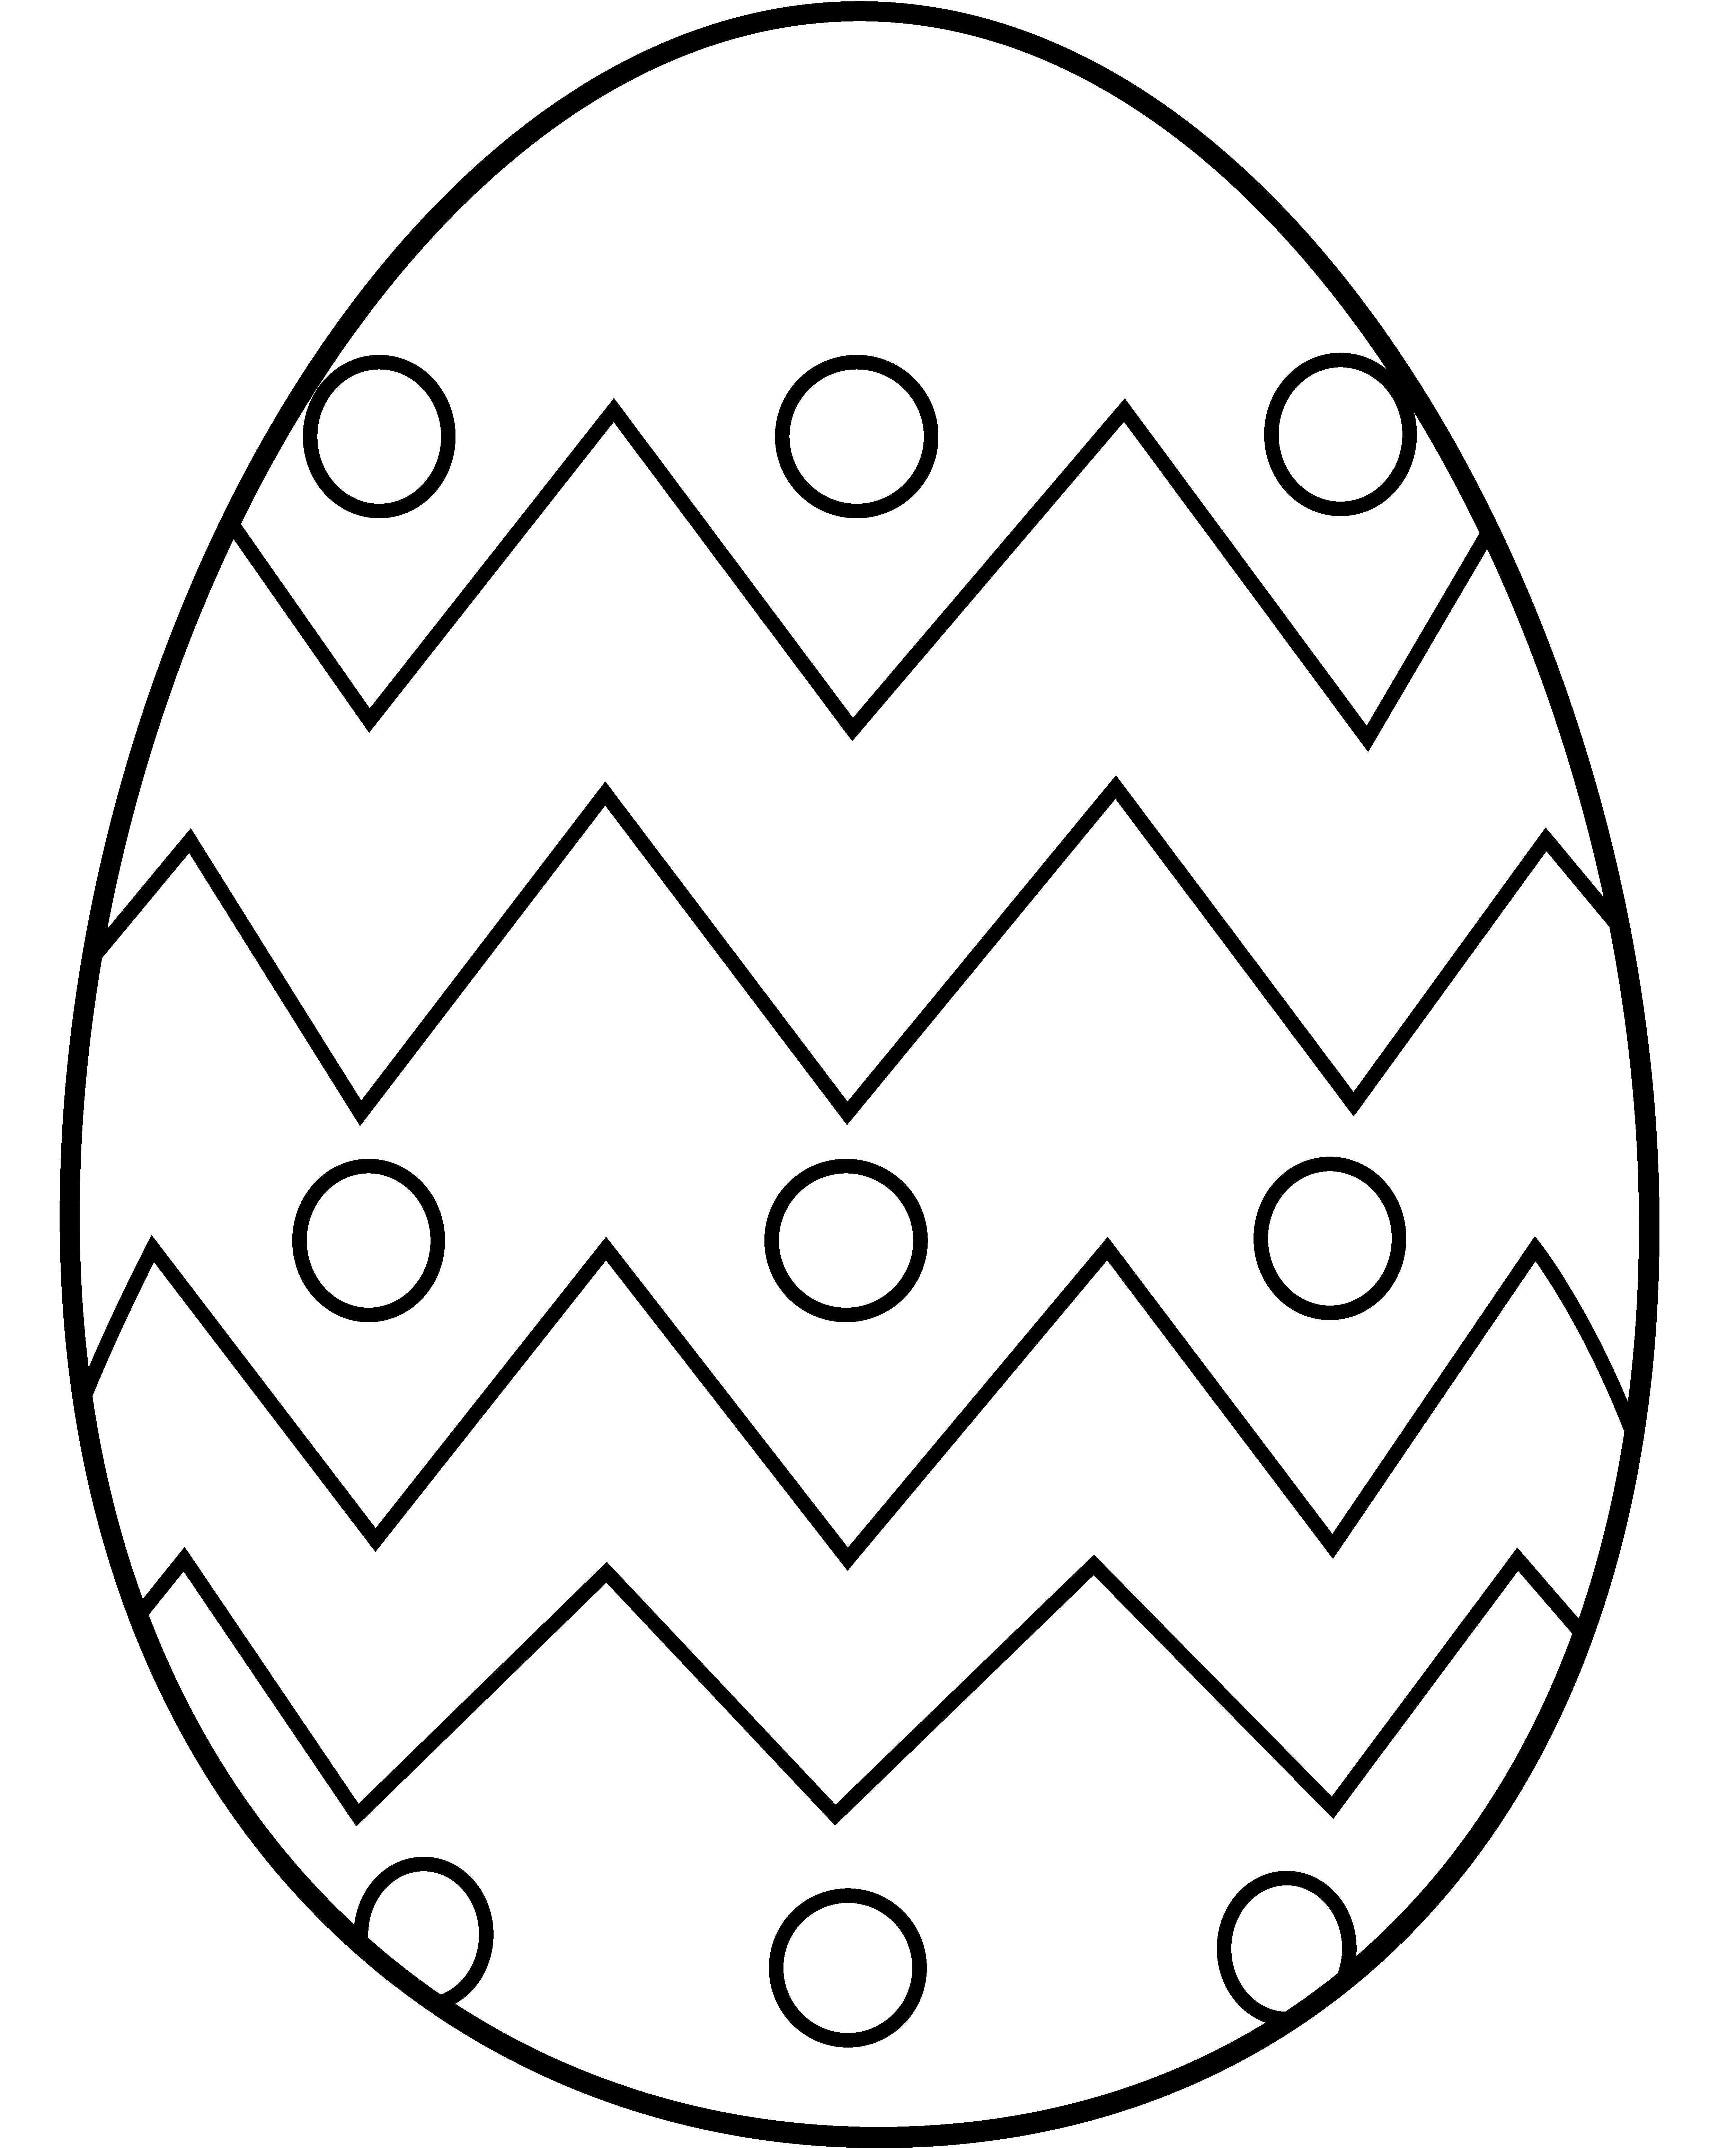 Easter Egg Colour In Easter Coloring Pages Printable Easter Egg Pictures Free Easter Coloring Pages